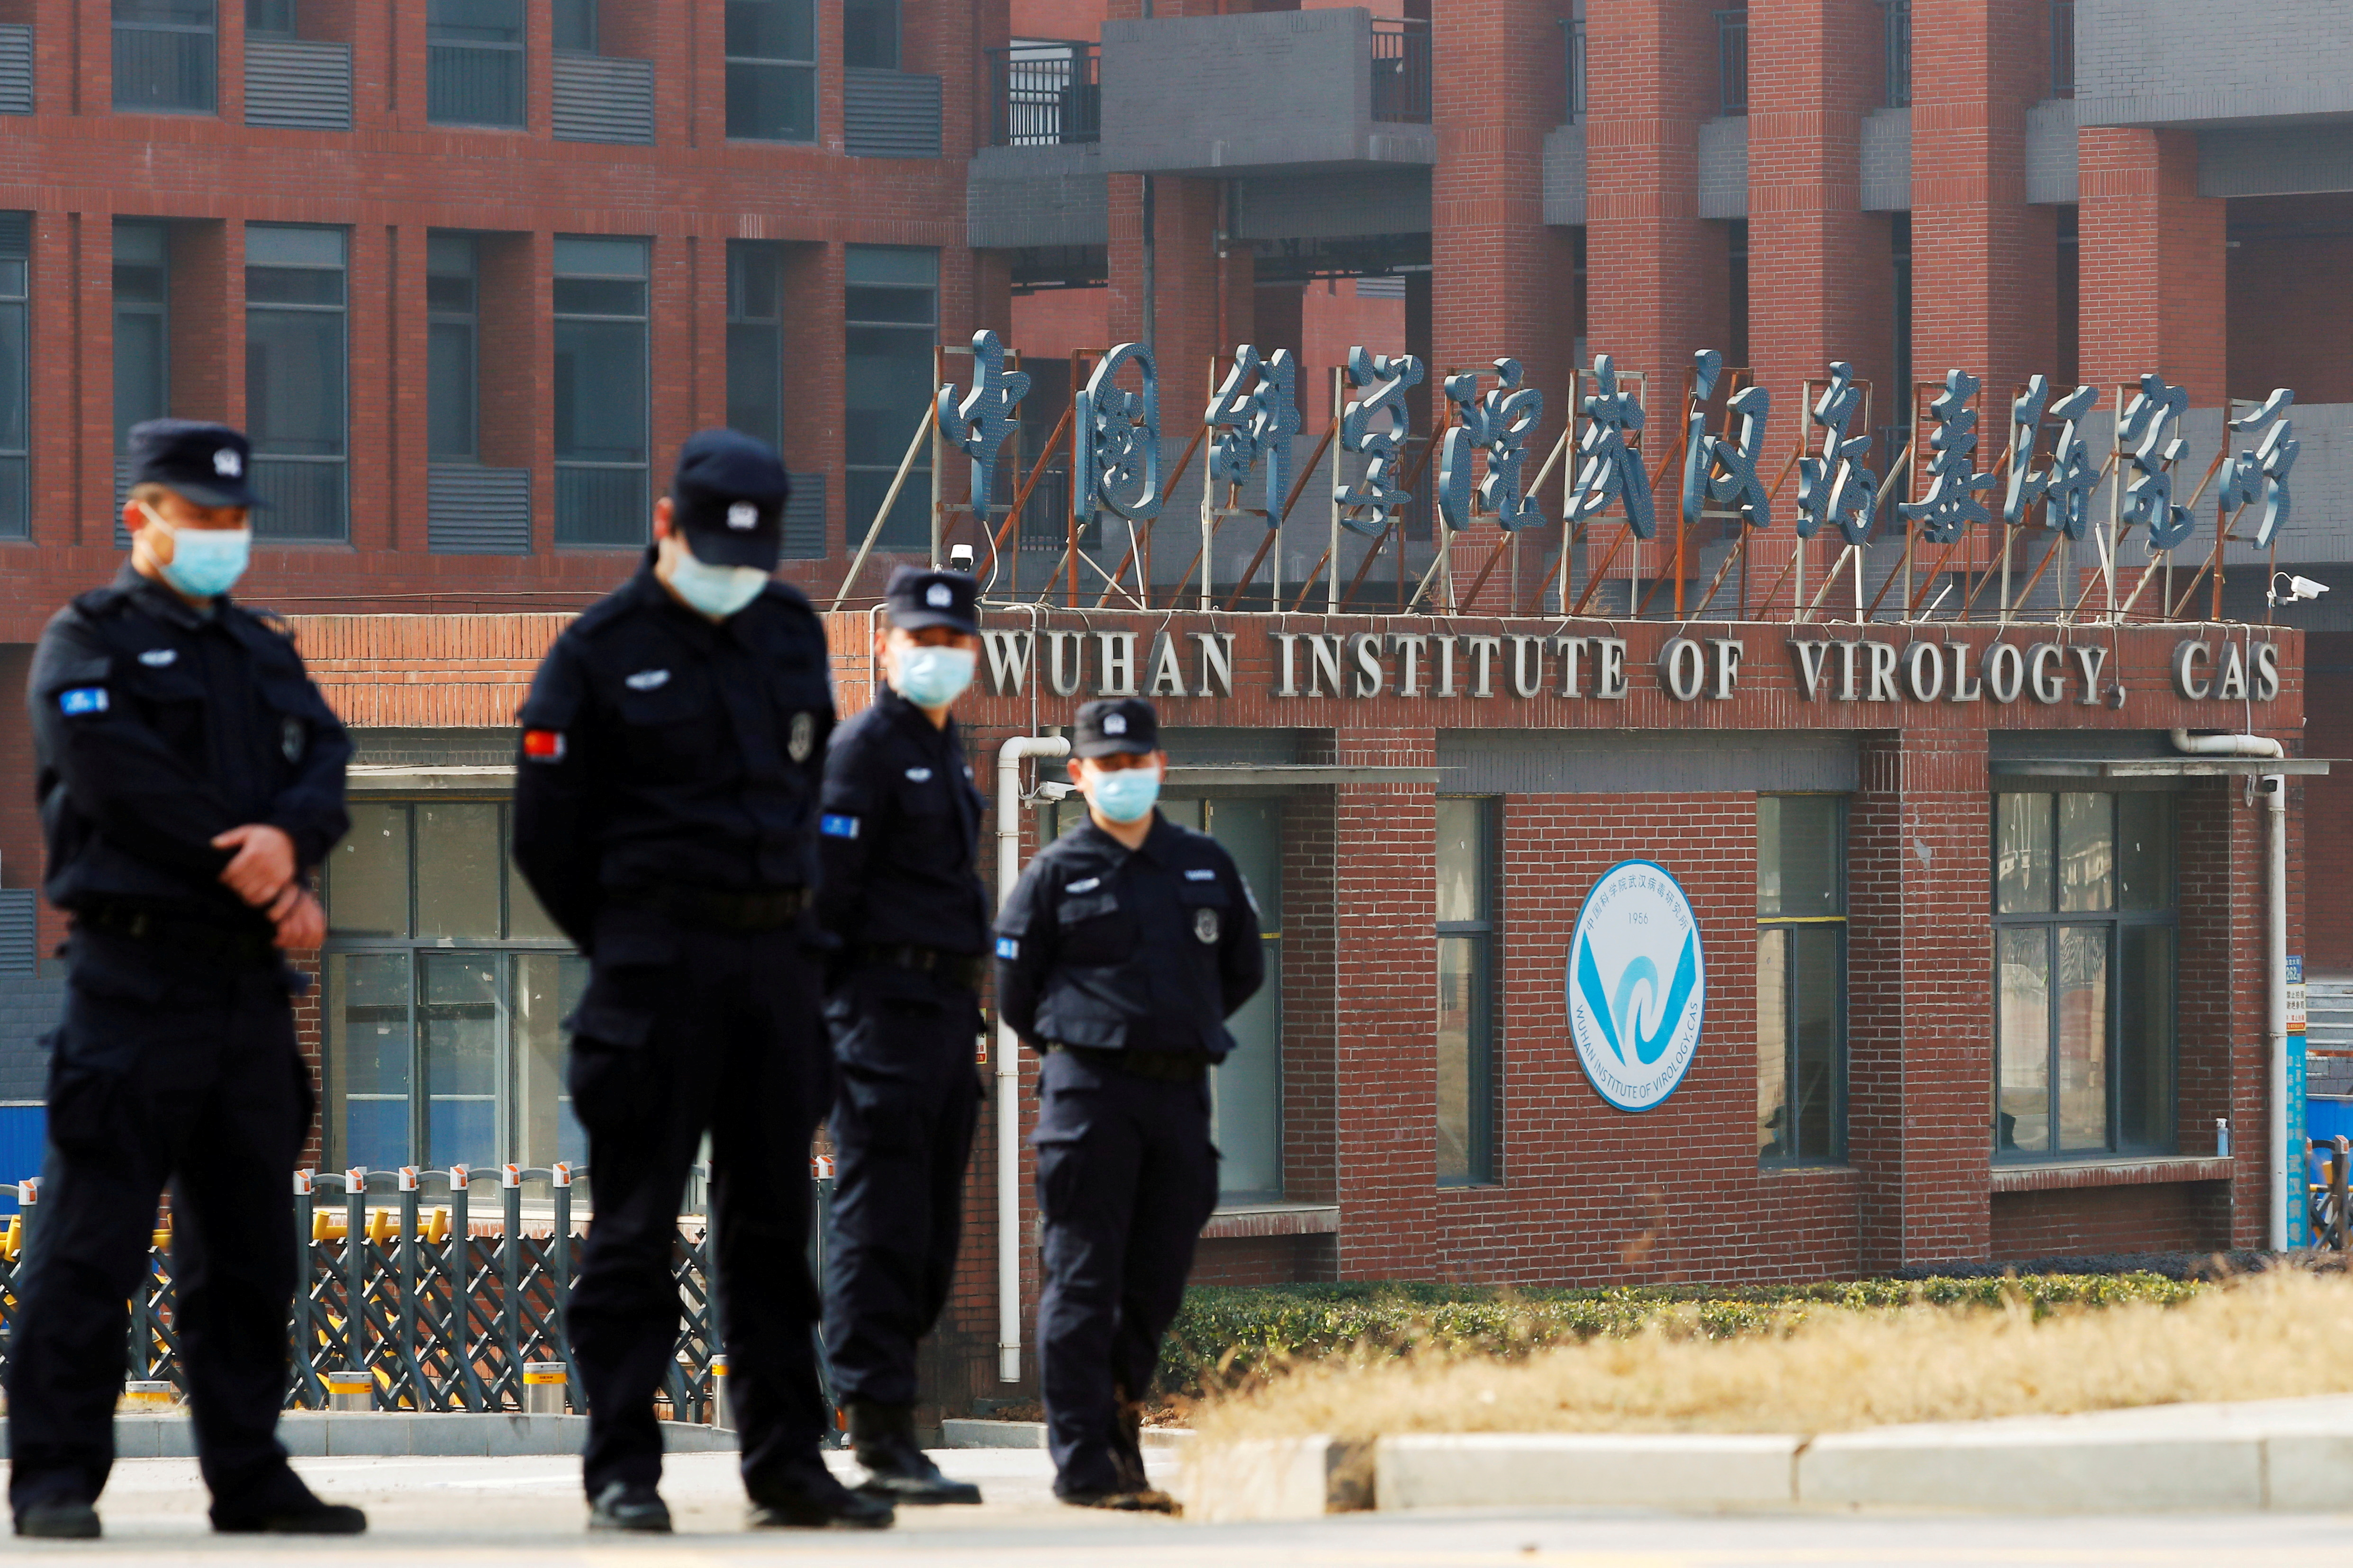 Security personnel keep watch outside Wuhan Institute of Virology during the visit by the World Health Organization (WHO) team tasked with investigating the origins of the coronavirus disease (COVID-19), inWuhan, Hubei province, China February 3, 2021. REUTERS/Thomas Peter/File Photo